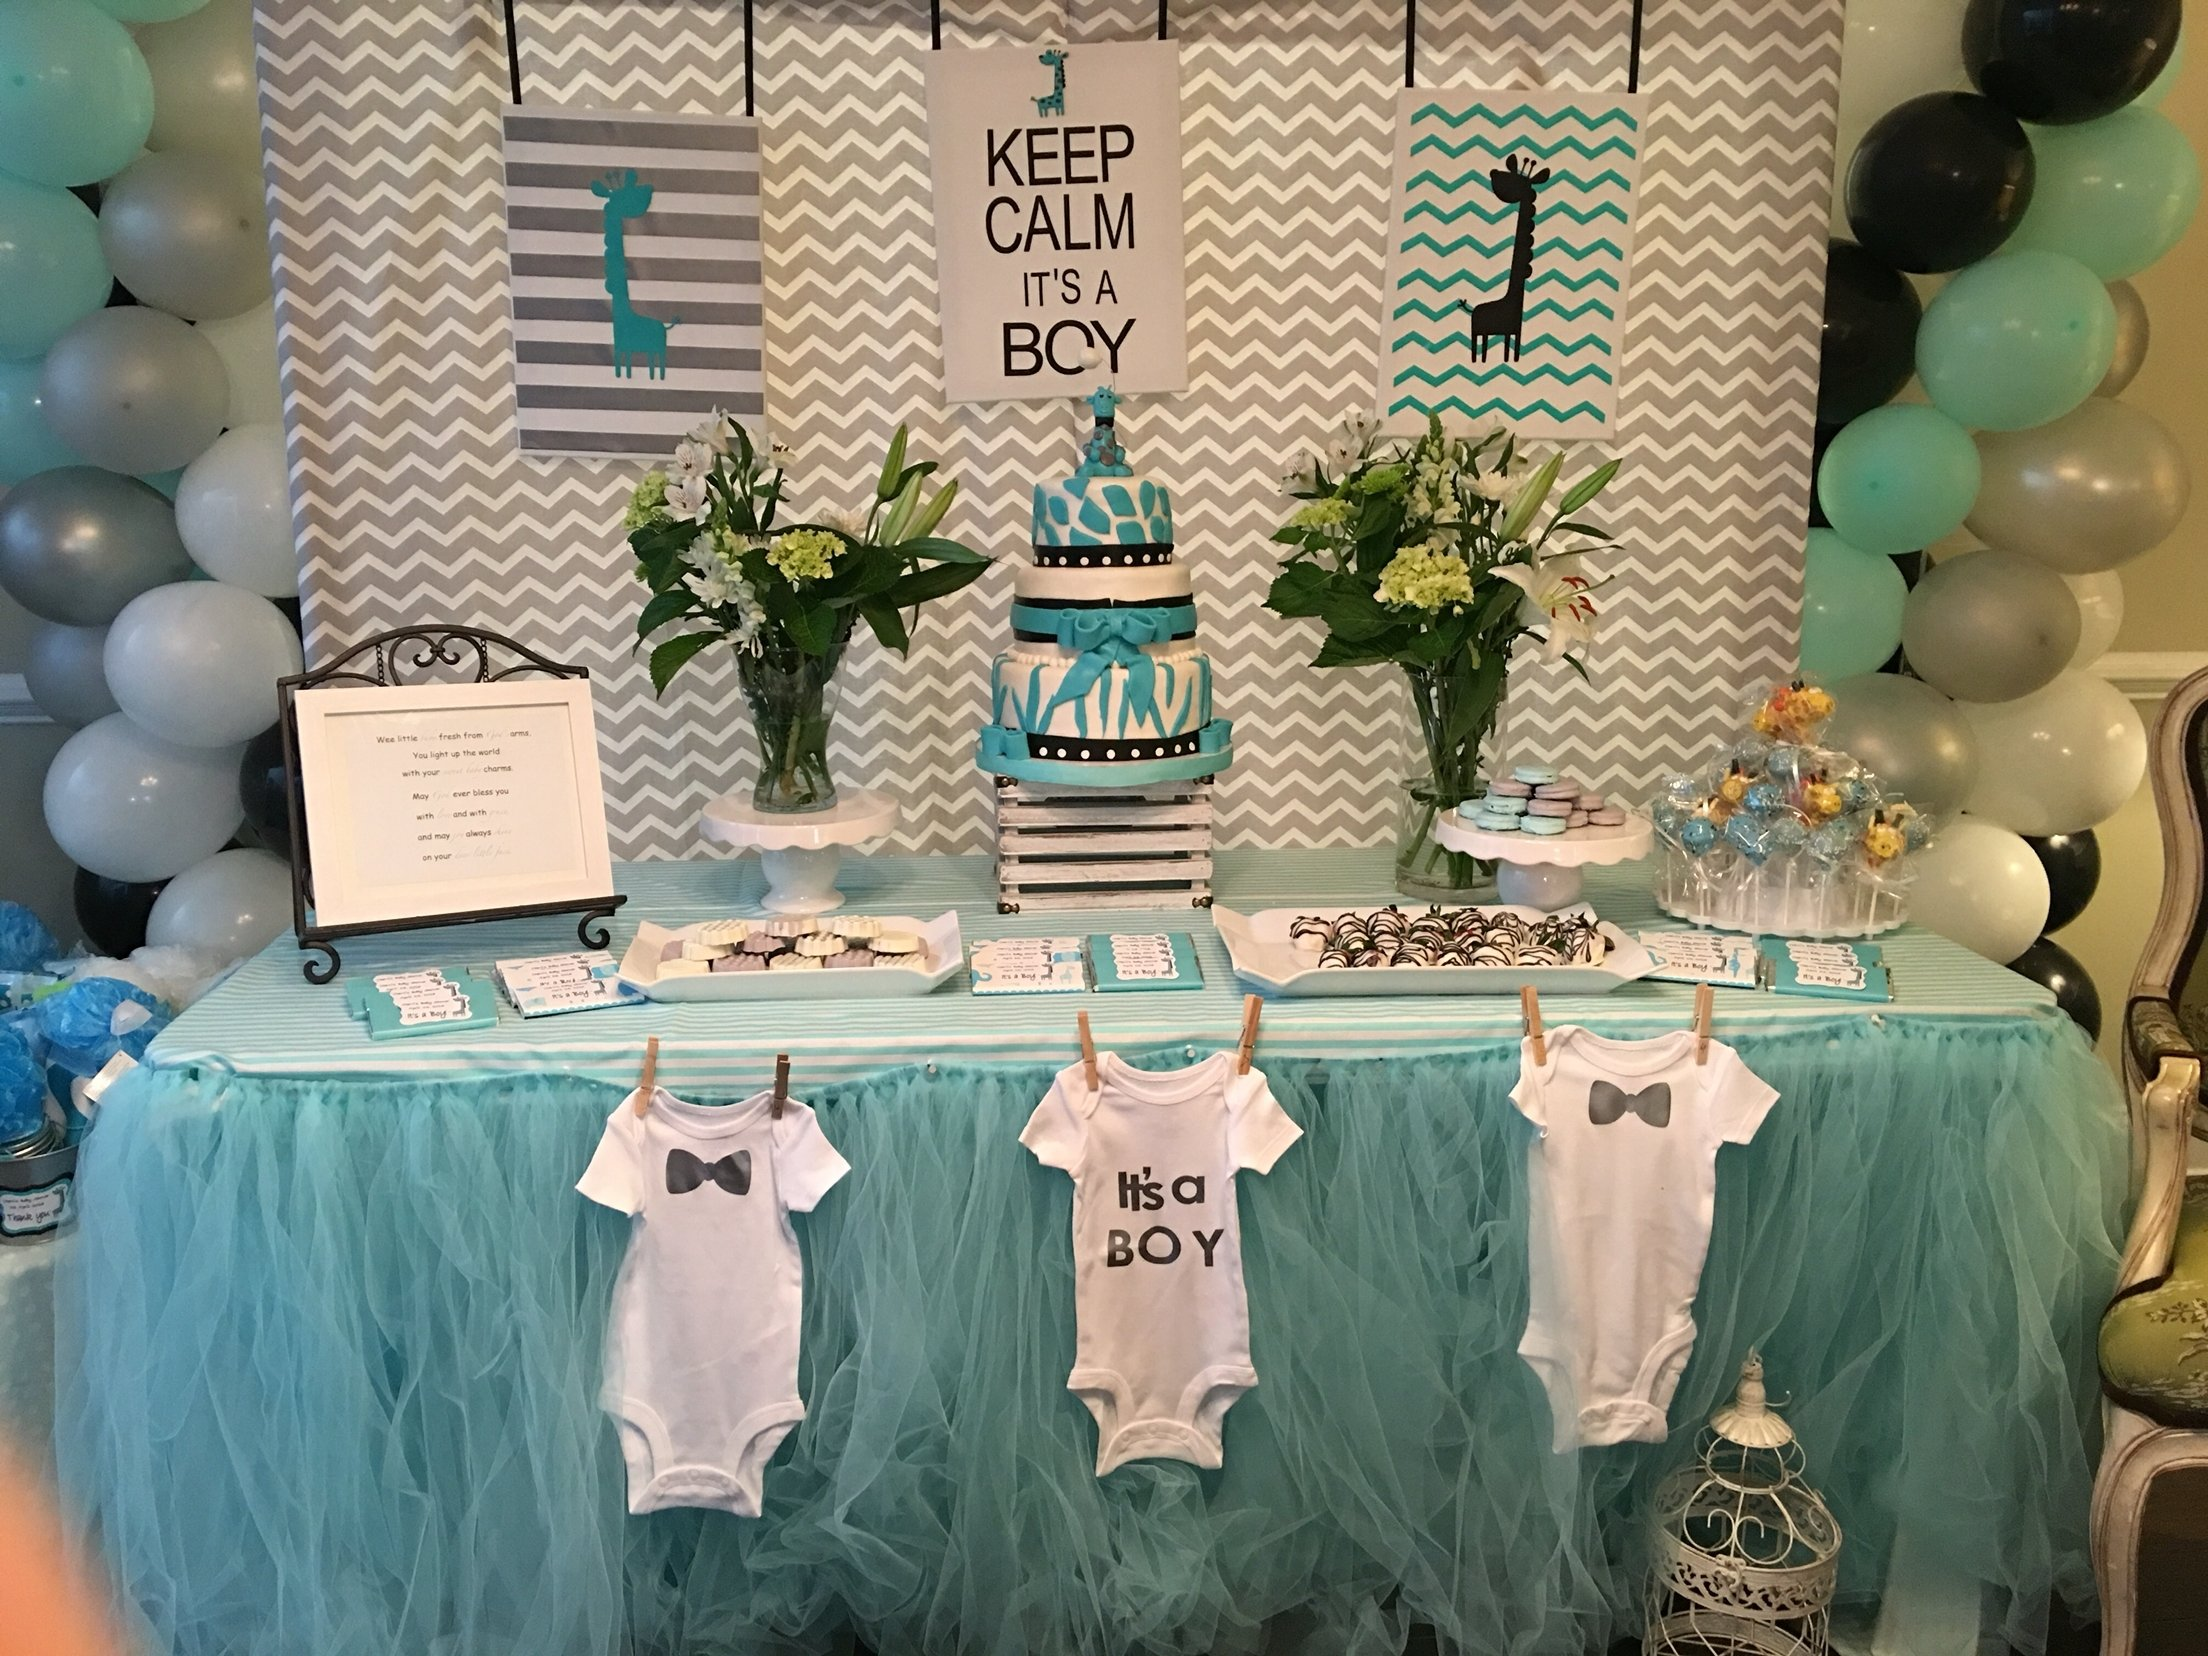 10 Unique Baby Shower Decoration Ideas For Boy decorations baby shower centerpiece ideas plus showers table room 1 2021